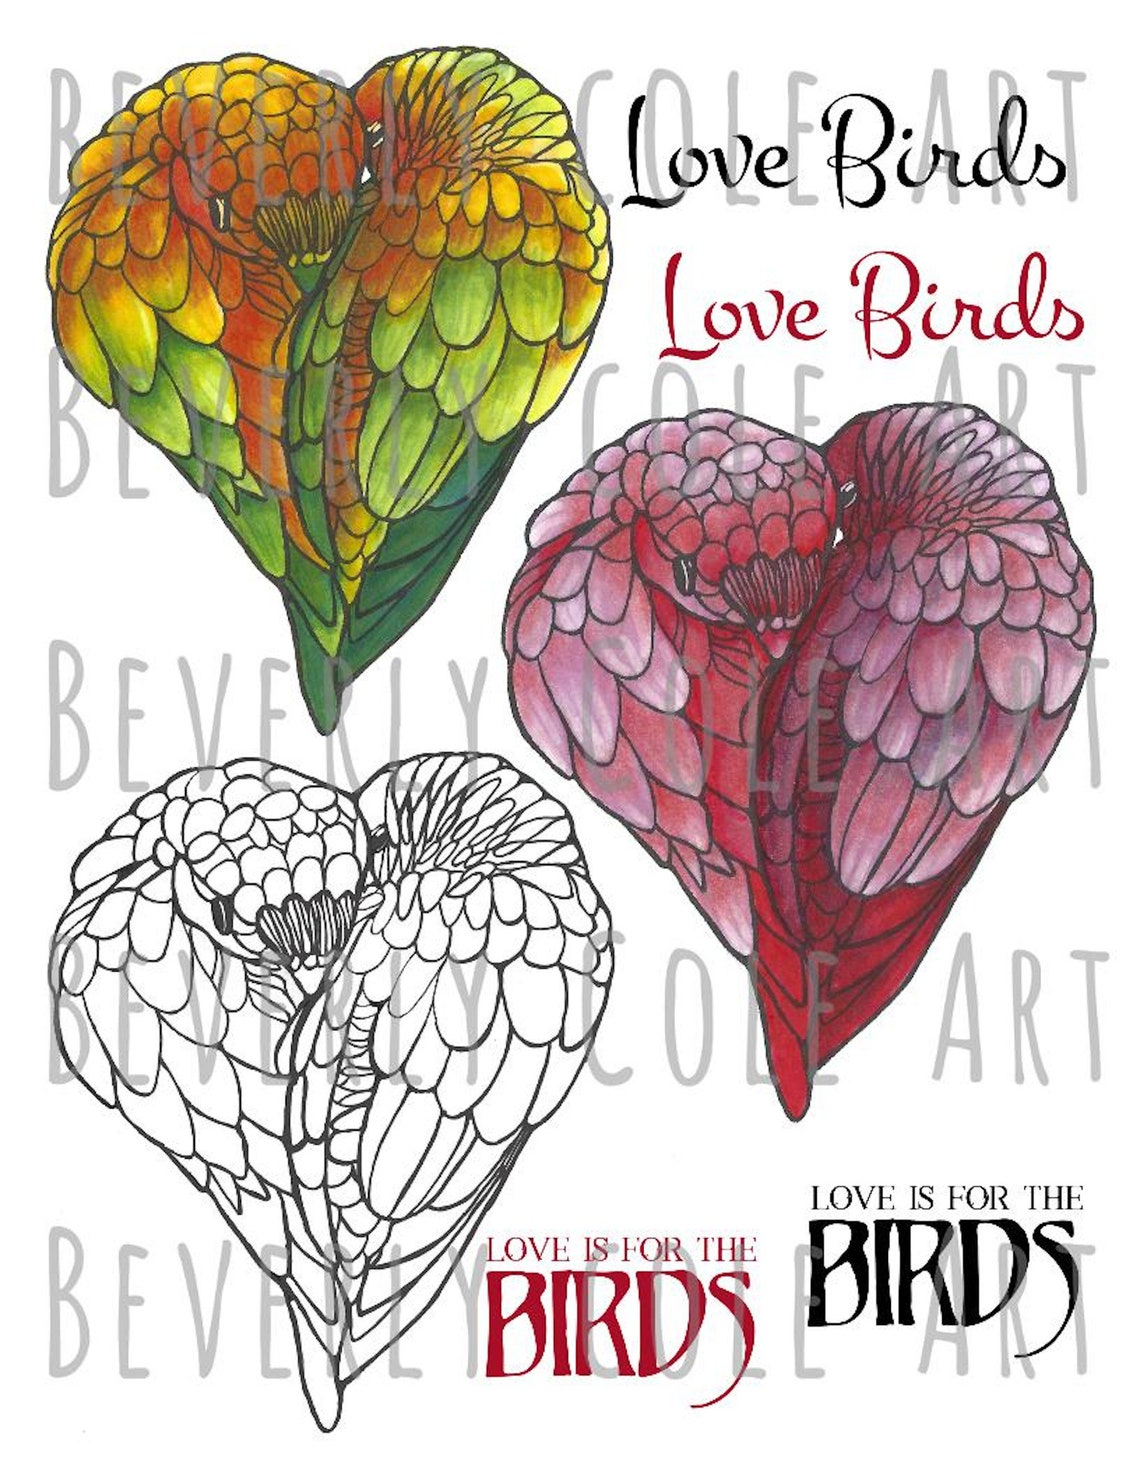 Love Birds Digital Stamp Set by Beverly Cole jpg png color image 1